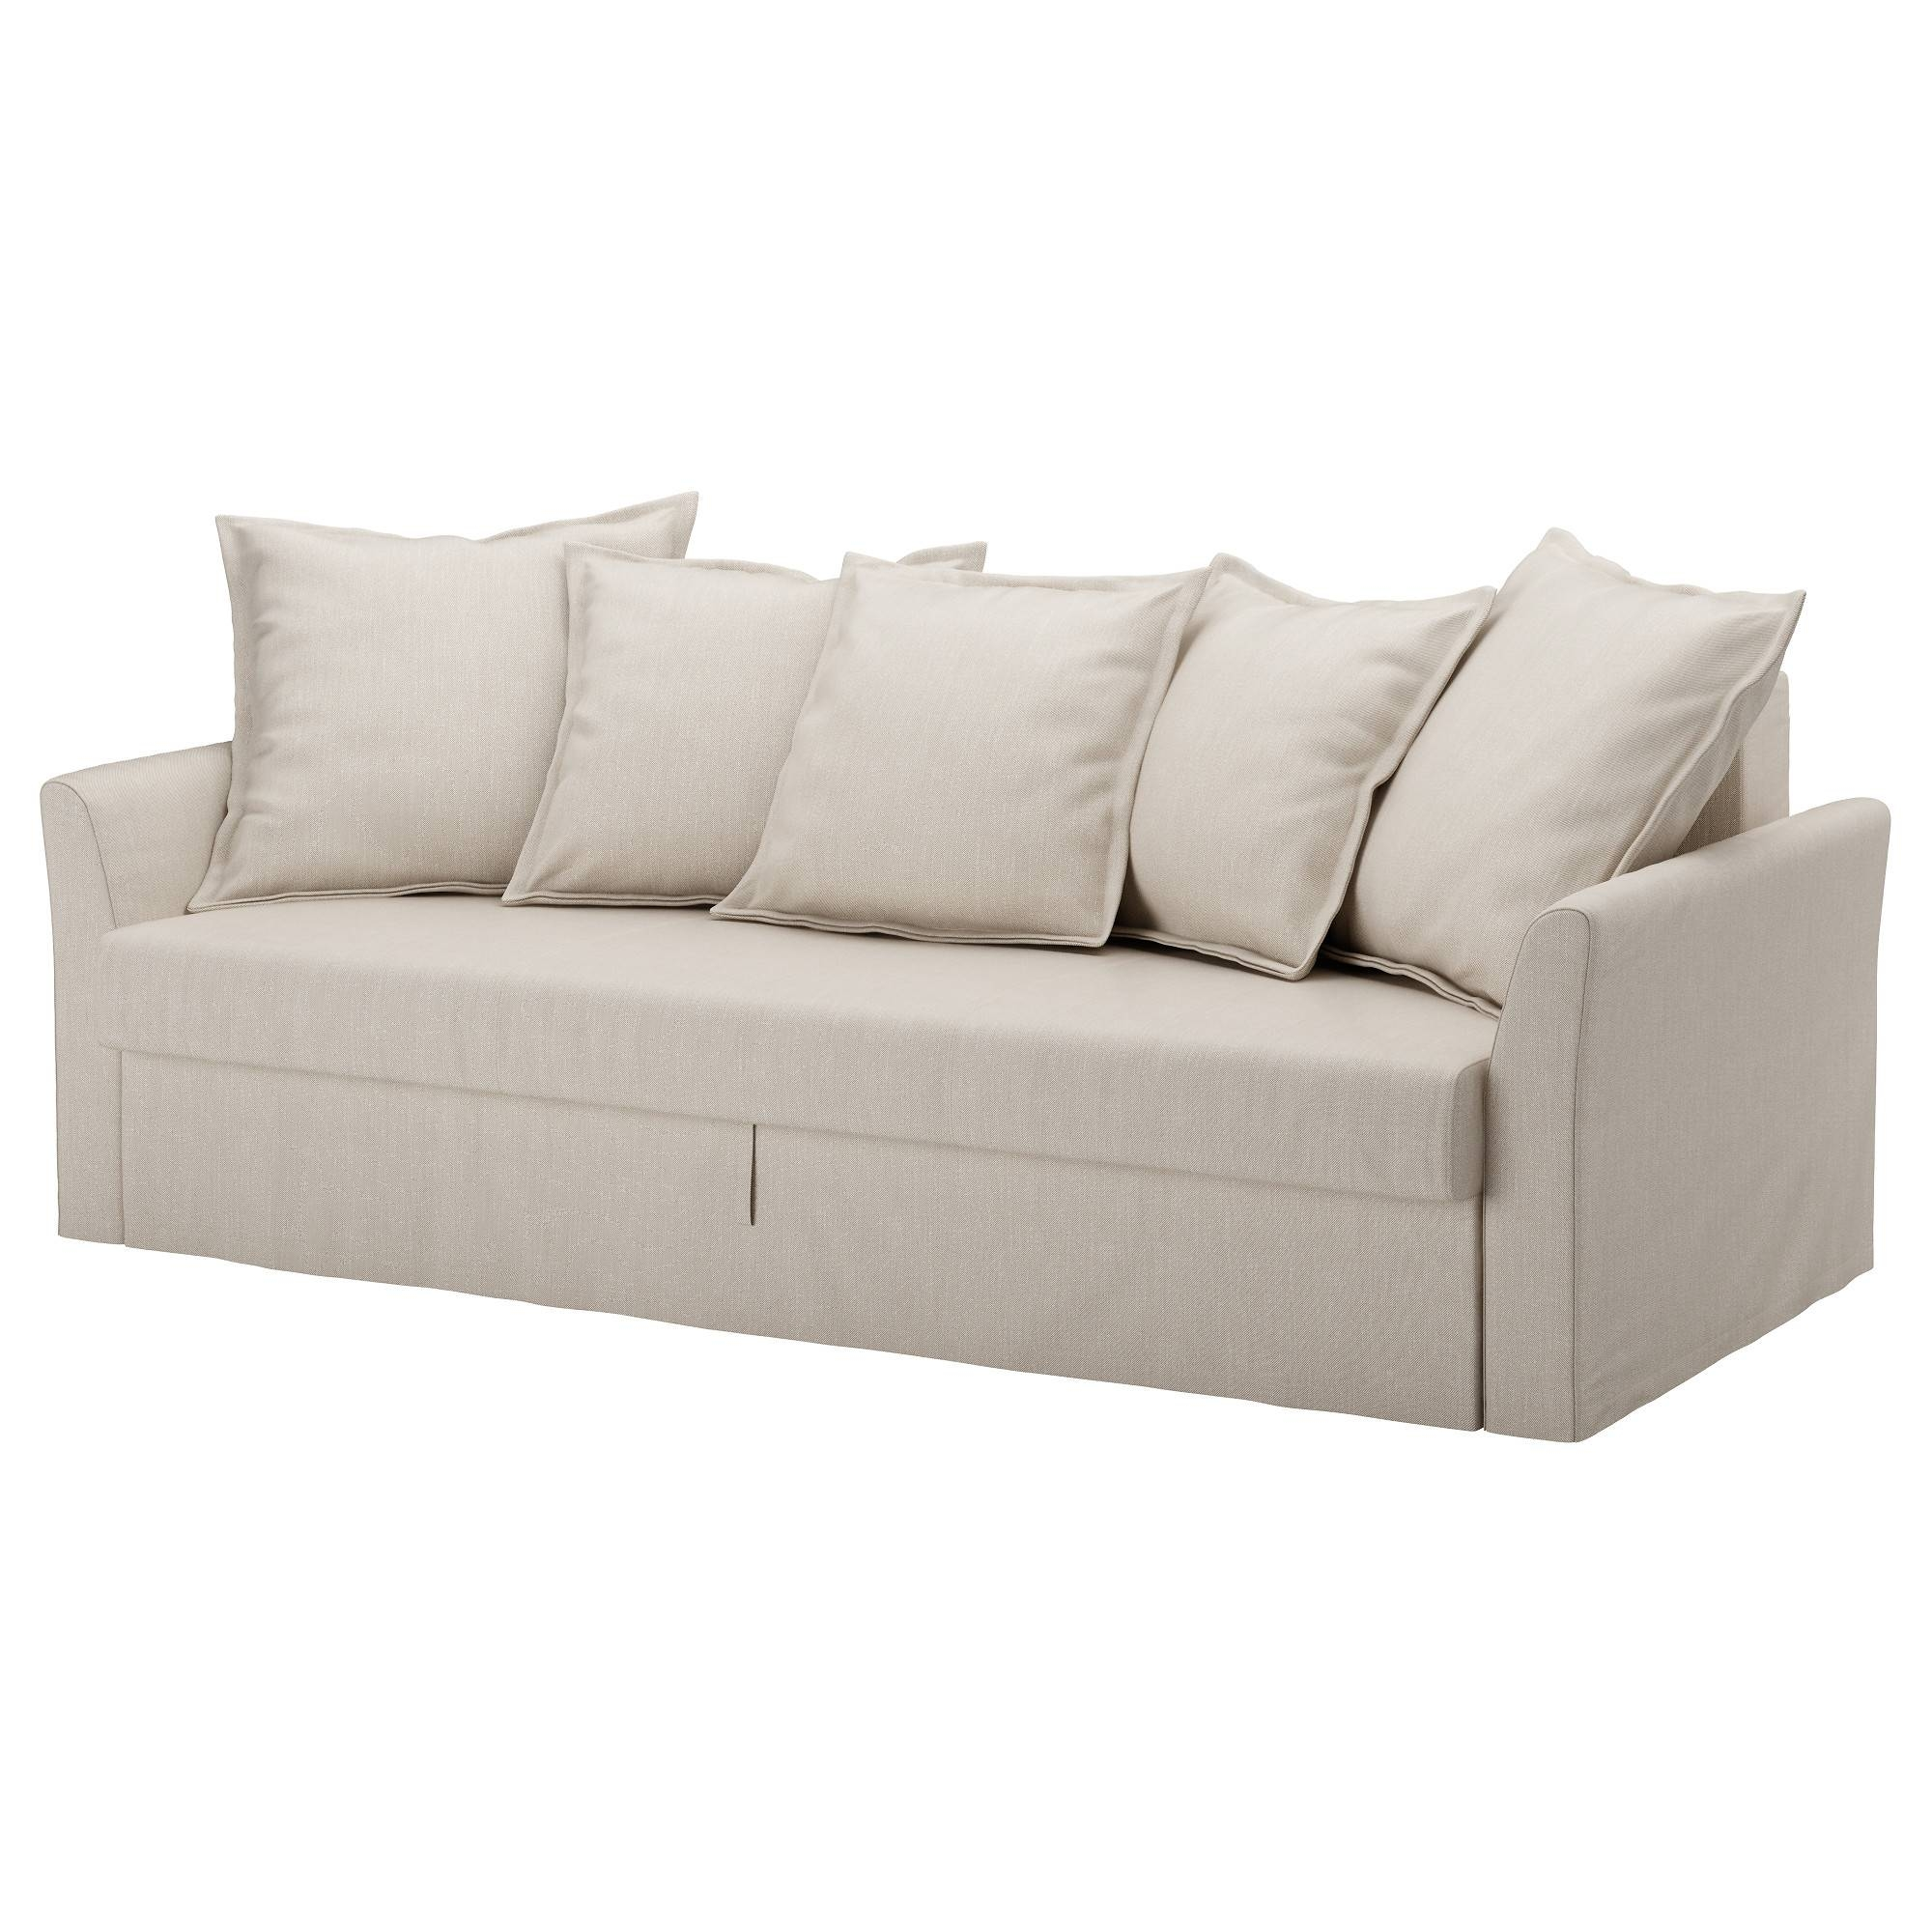 Sofa Beds & Futons - Ikea for Footstool Pouffe Sofa Folding Bed (Image 23 of 25)